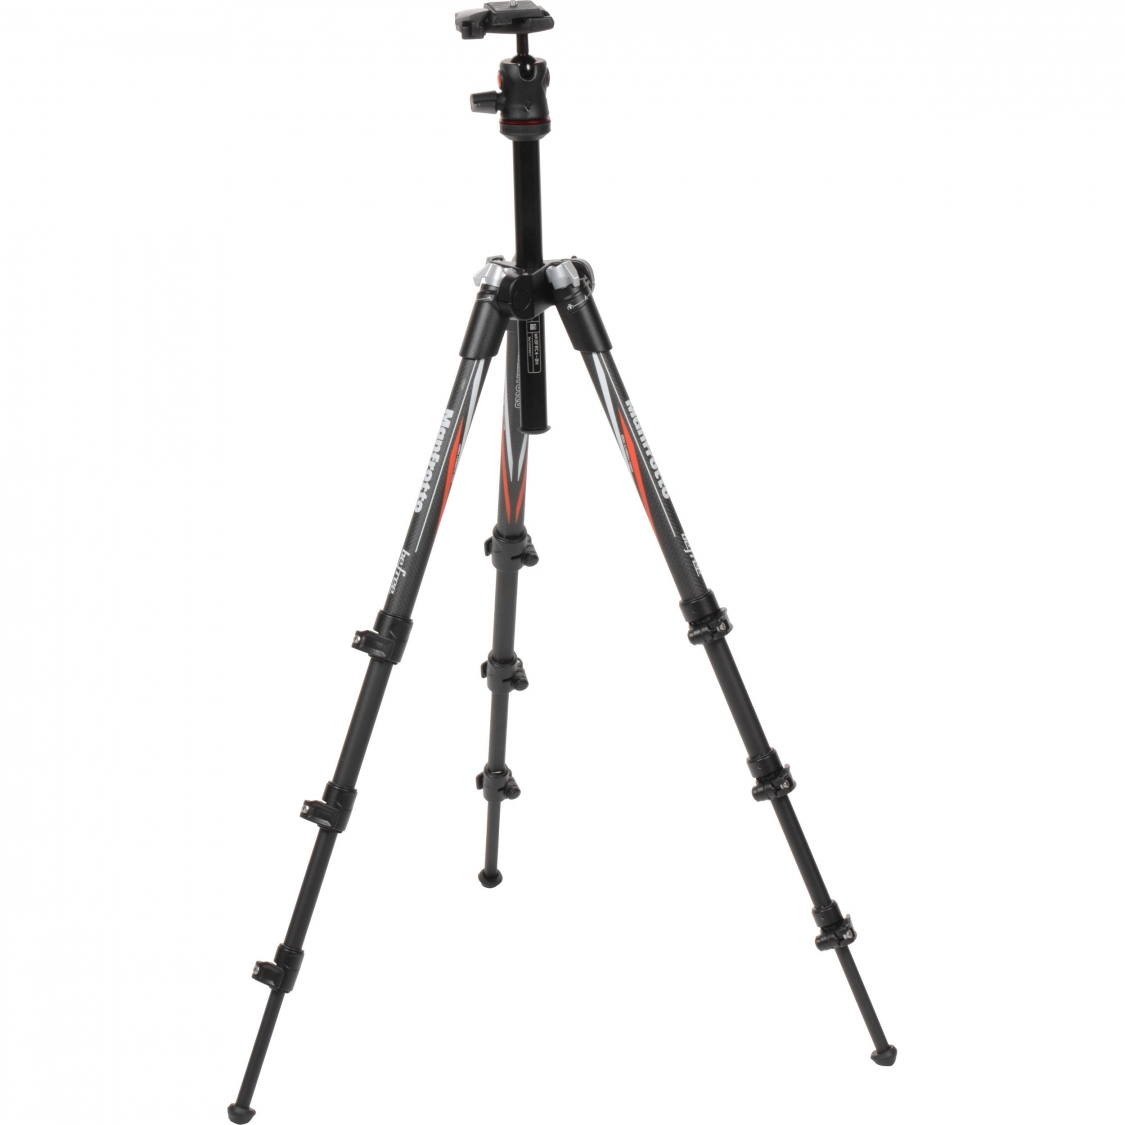 Manfrotto Befree Carbon Fibre Travel Tripod